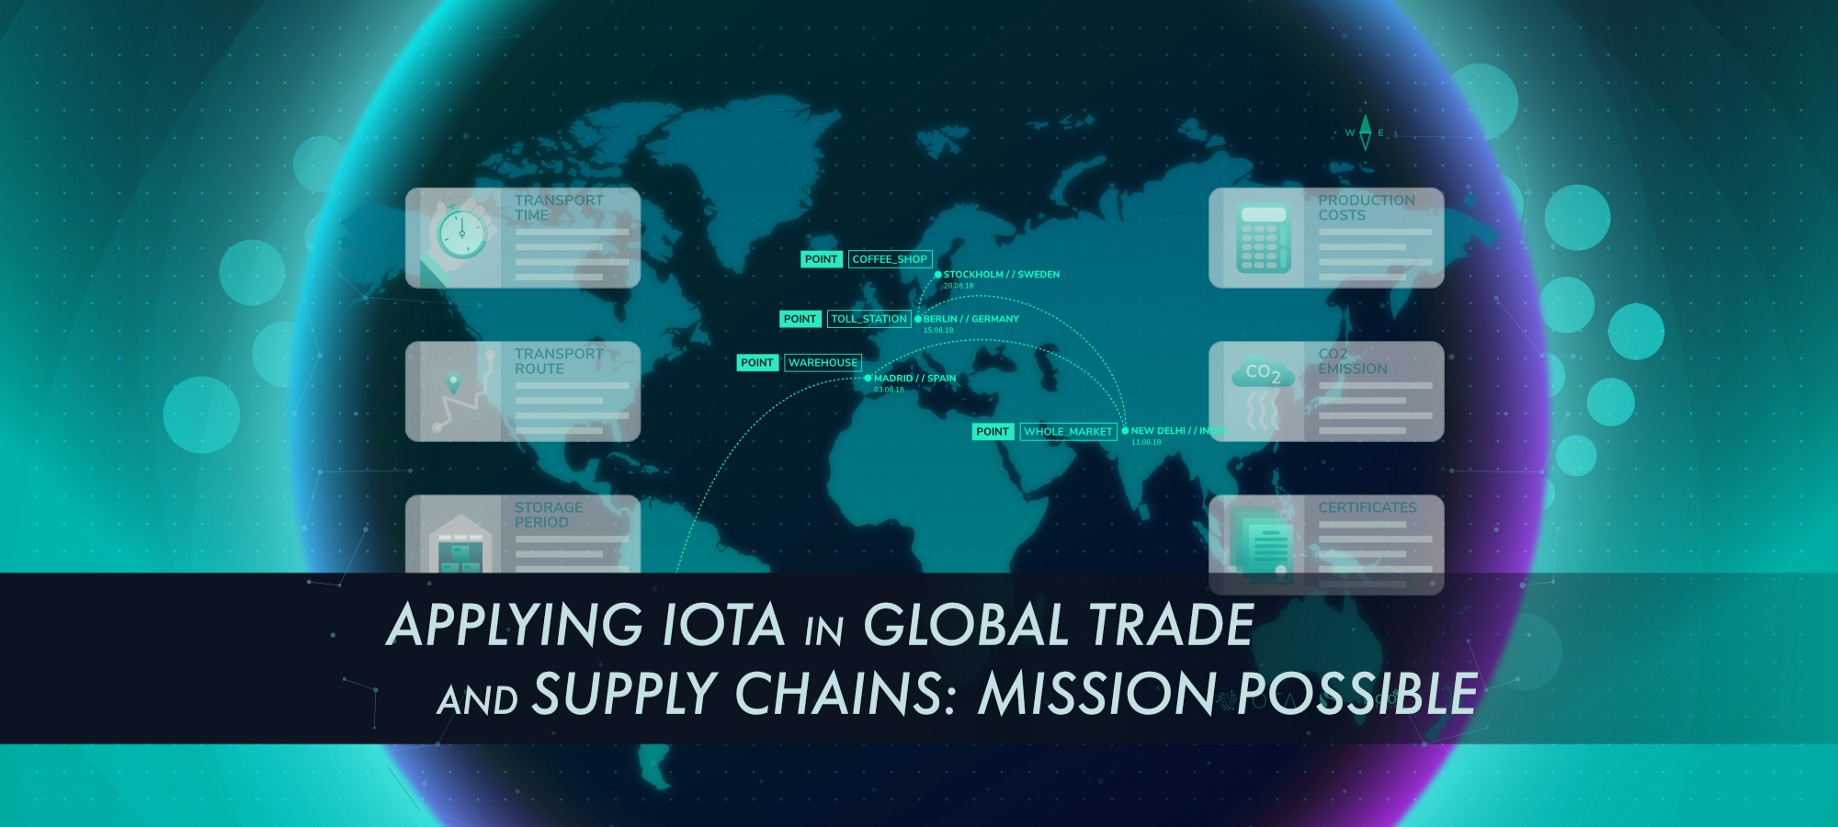 Applying IOTA in Global Trade and Supply Chains: Mission Possible